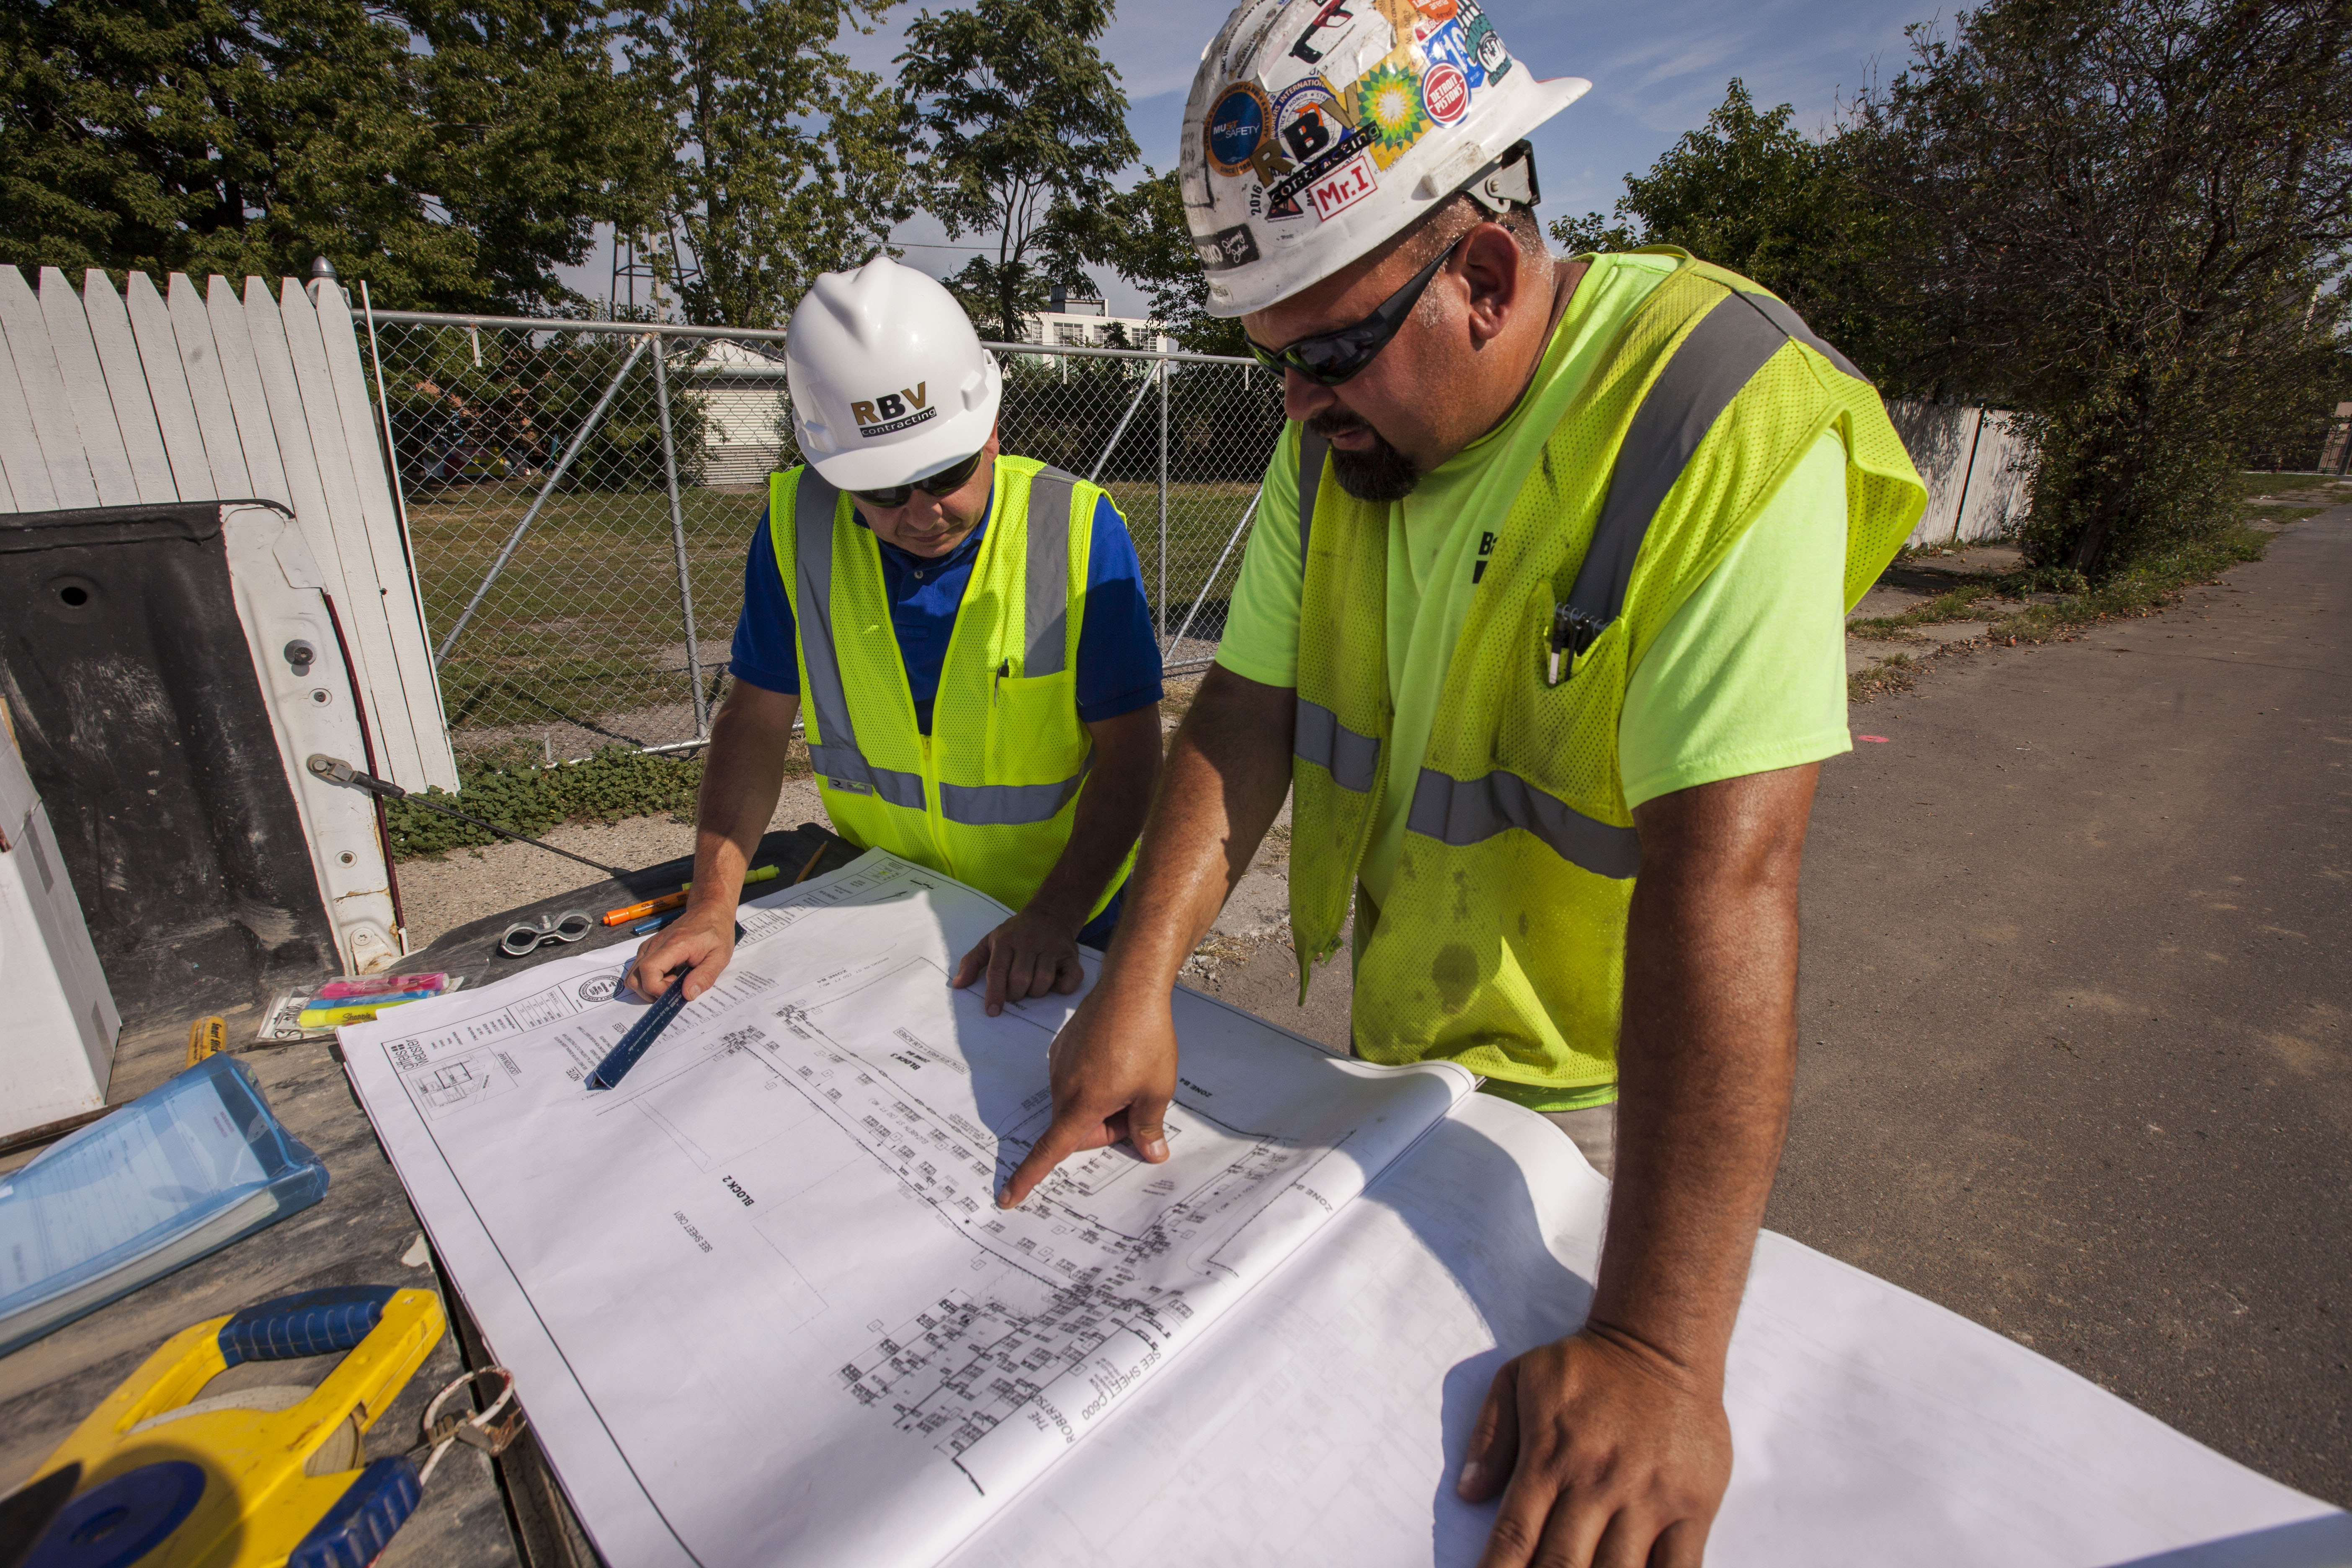 RBV Contracting employees discuss blueprints on the jobsite for Elton Park